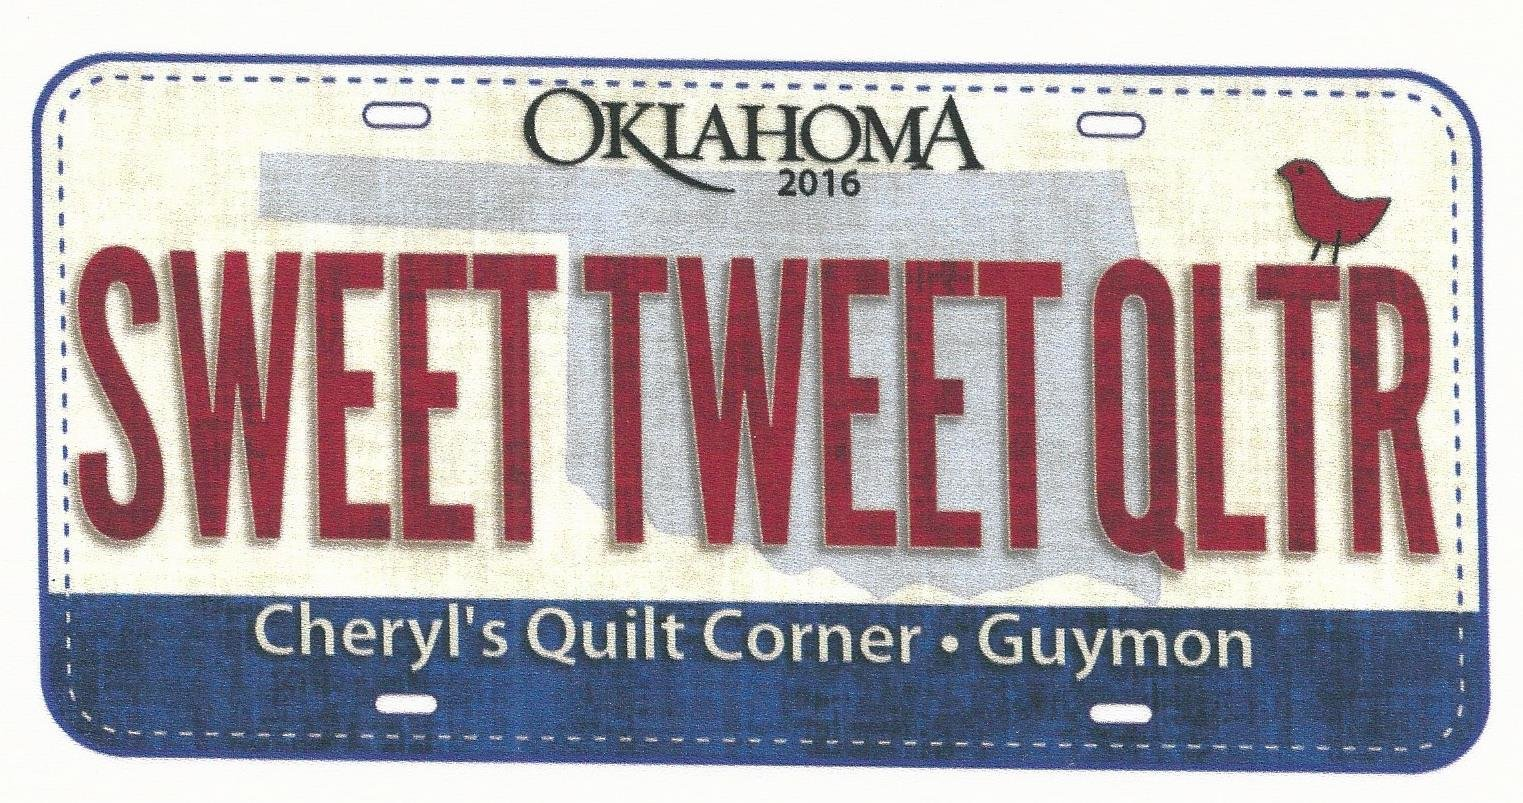 Sweet Tweet Quilter - 2016 license plate